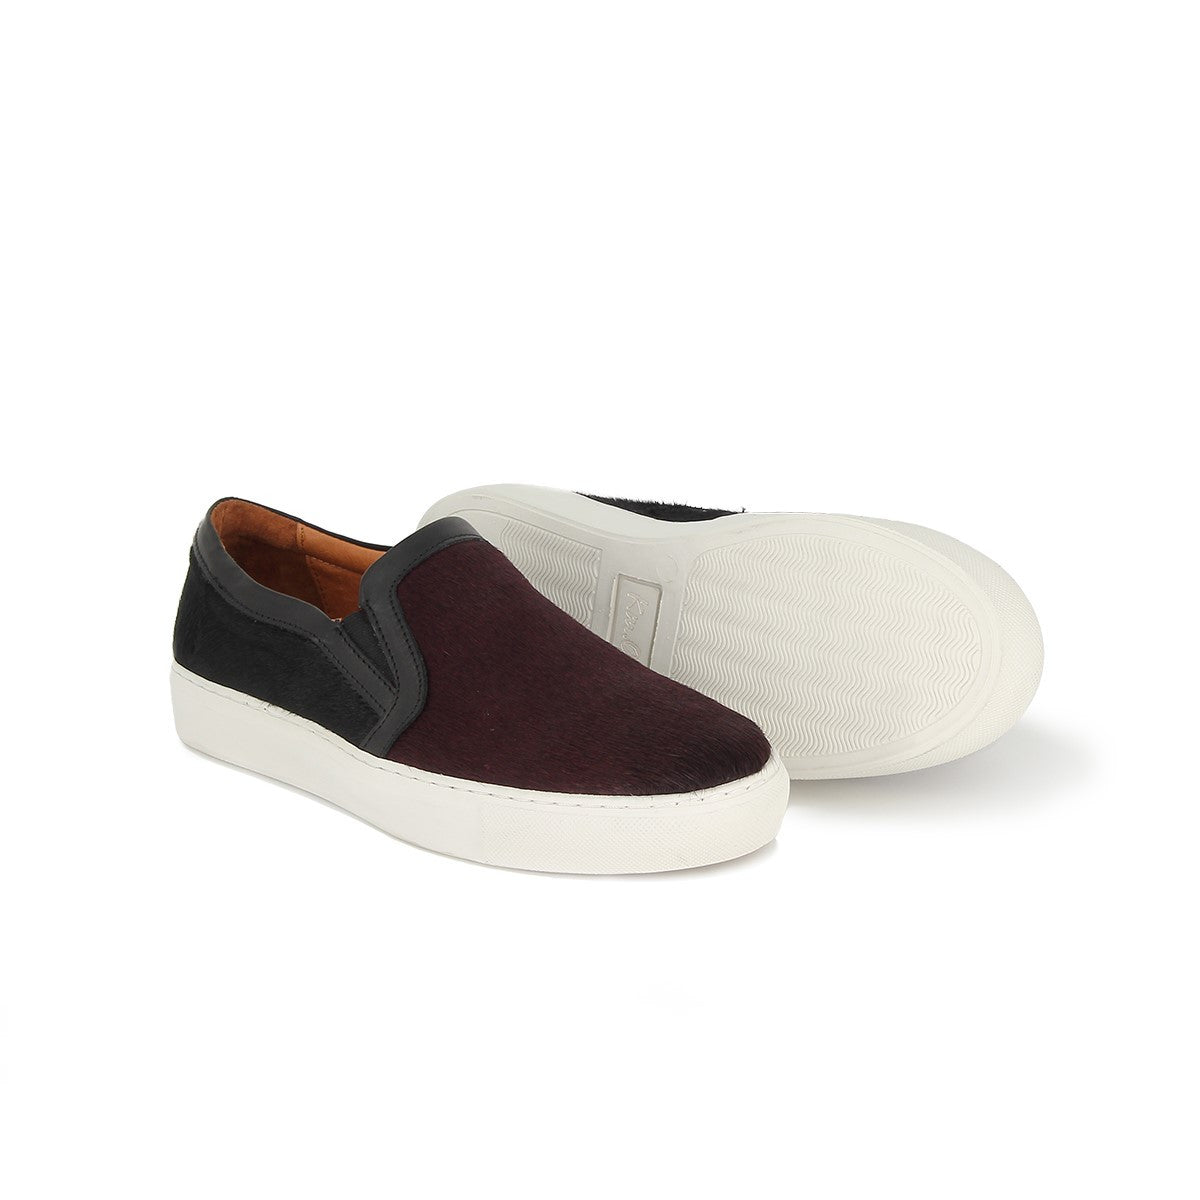 Baskets homme slip-on cuir PLAY ONE